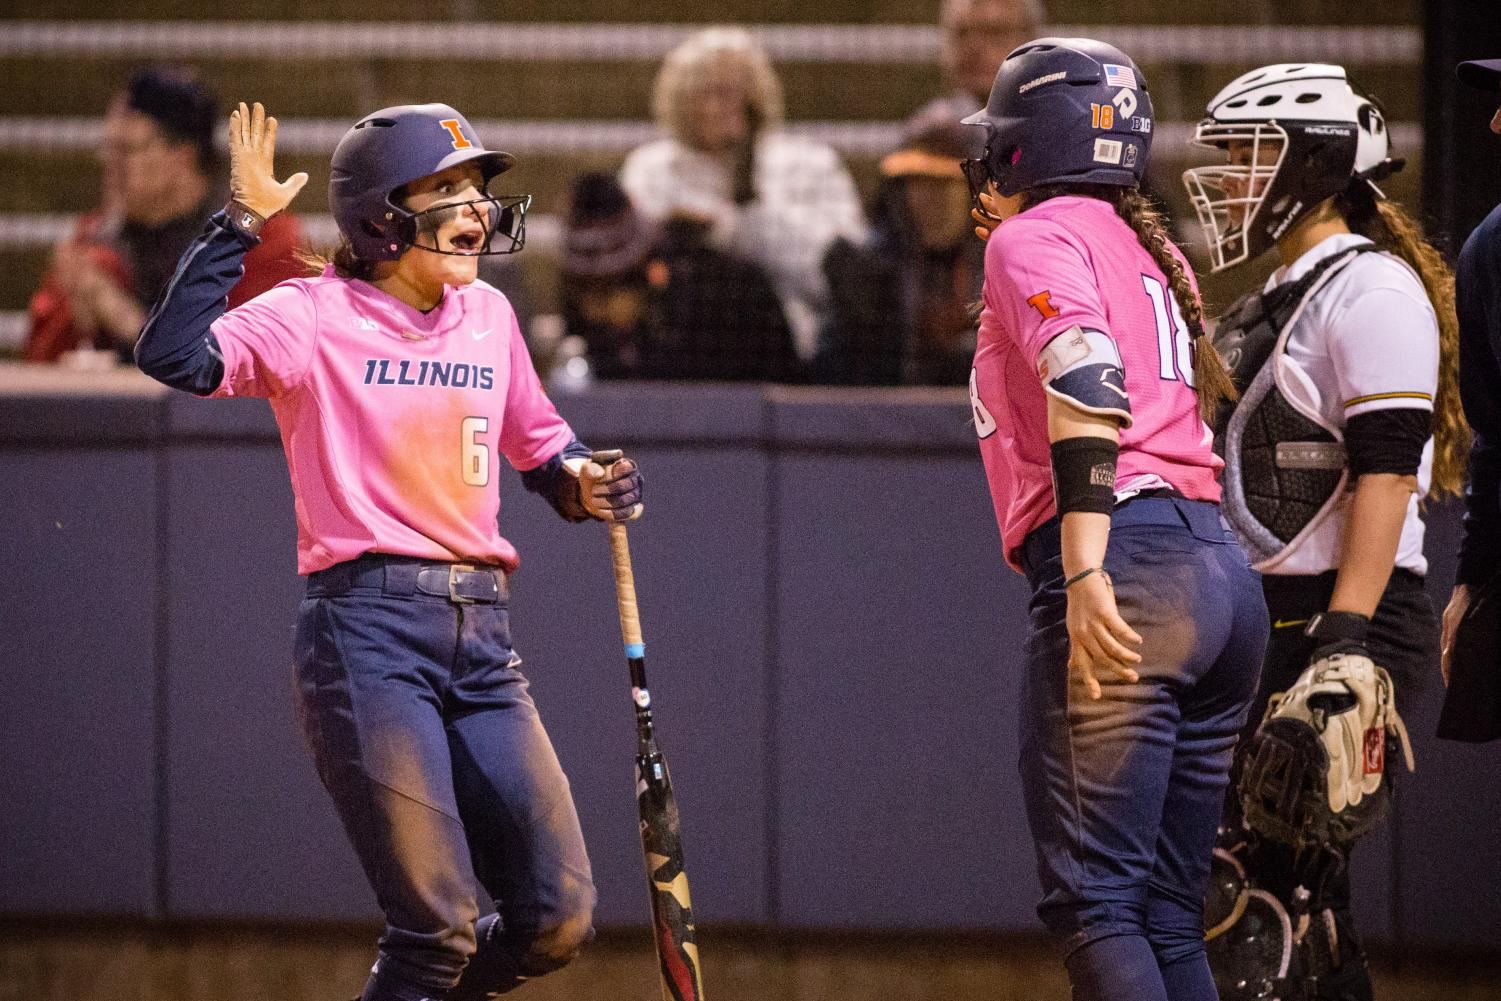 Illinois outfielder Kiana Sherlund (left) celebrates with catcher Bella Loya (right) after scoring a run in the bottom of the seventh to make the score 5-5 against Iowa at Eichelberger Field on April 21. The Illini won 6-5. Sherlund and Loya are excited to start the new season and build on their skills.